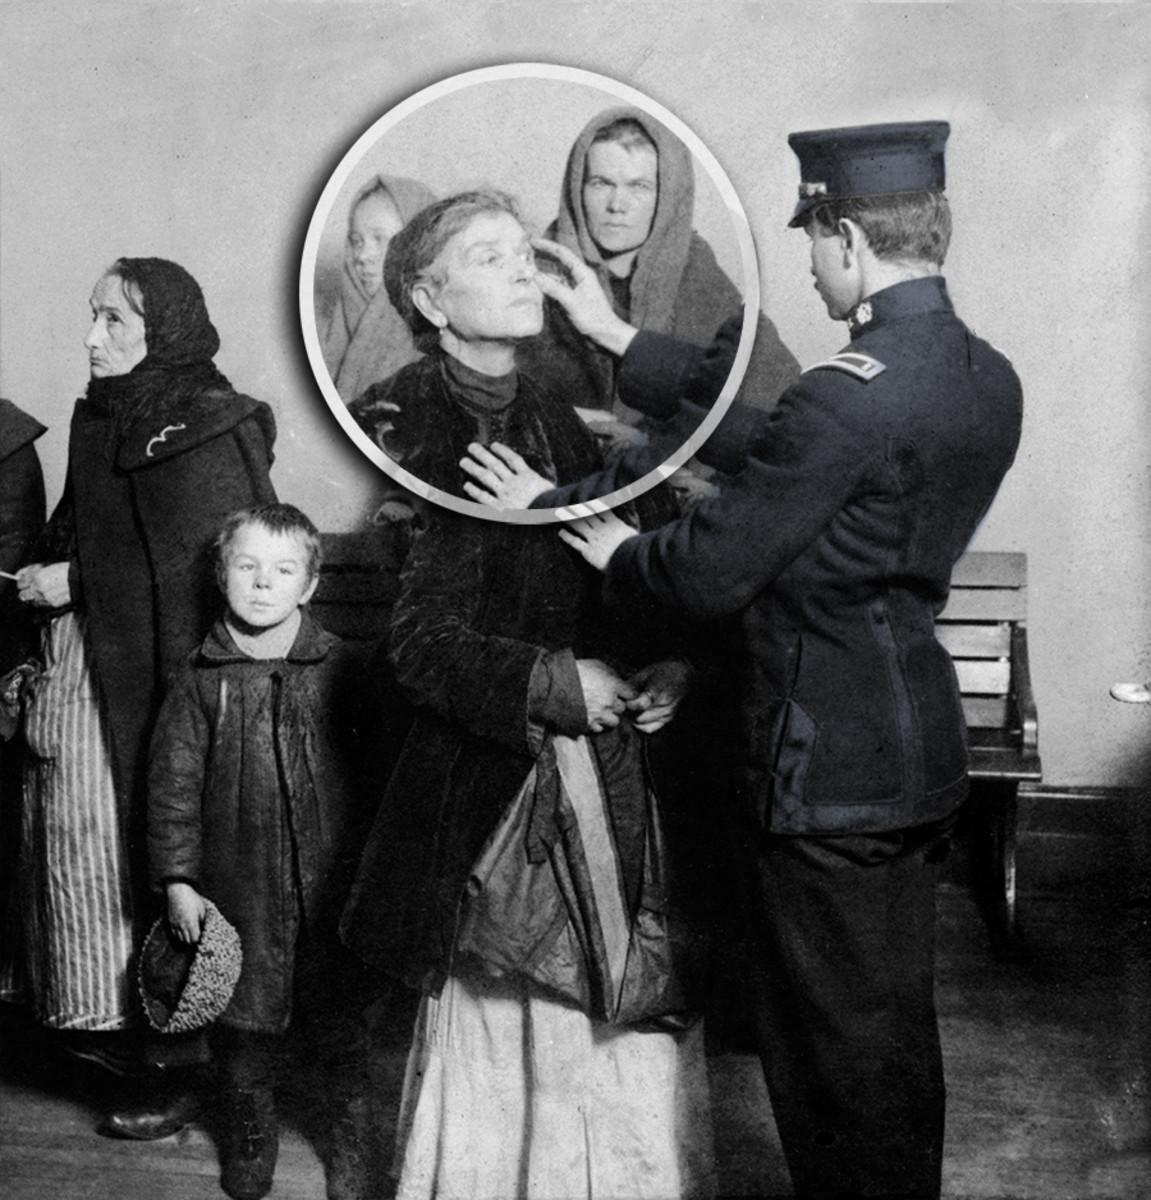 Ellis Island | Non-medical personal conduct an eye inspection - trachoma would mean the person would be refused entry.